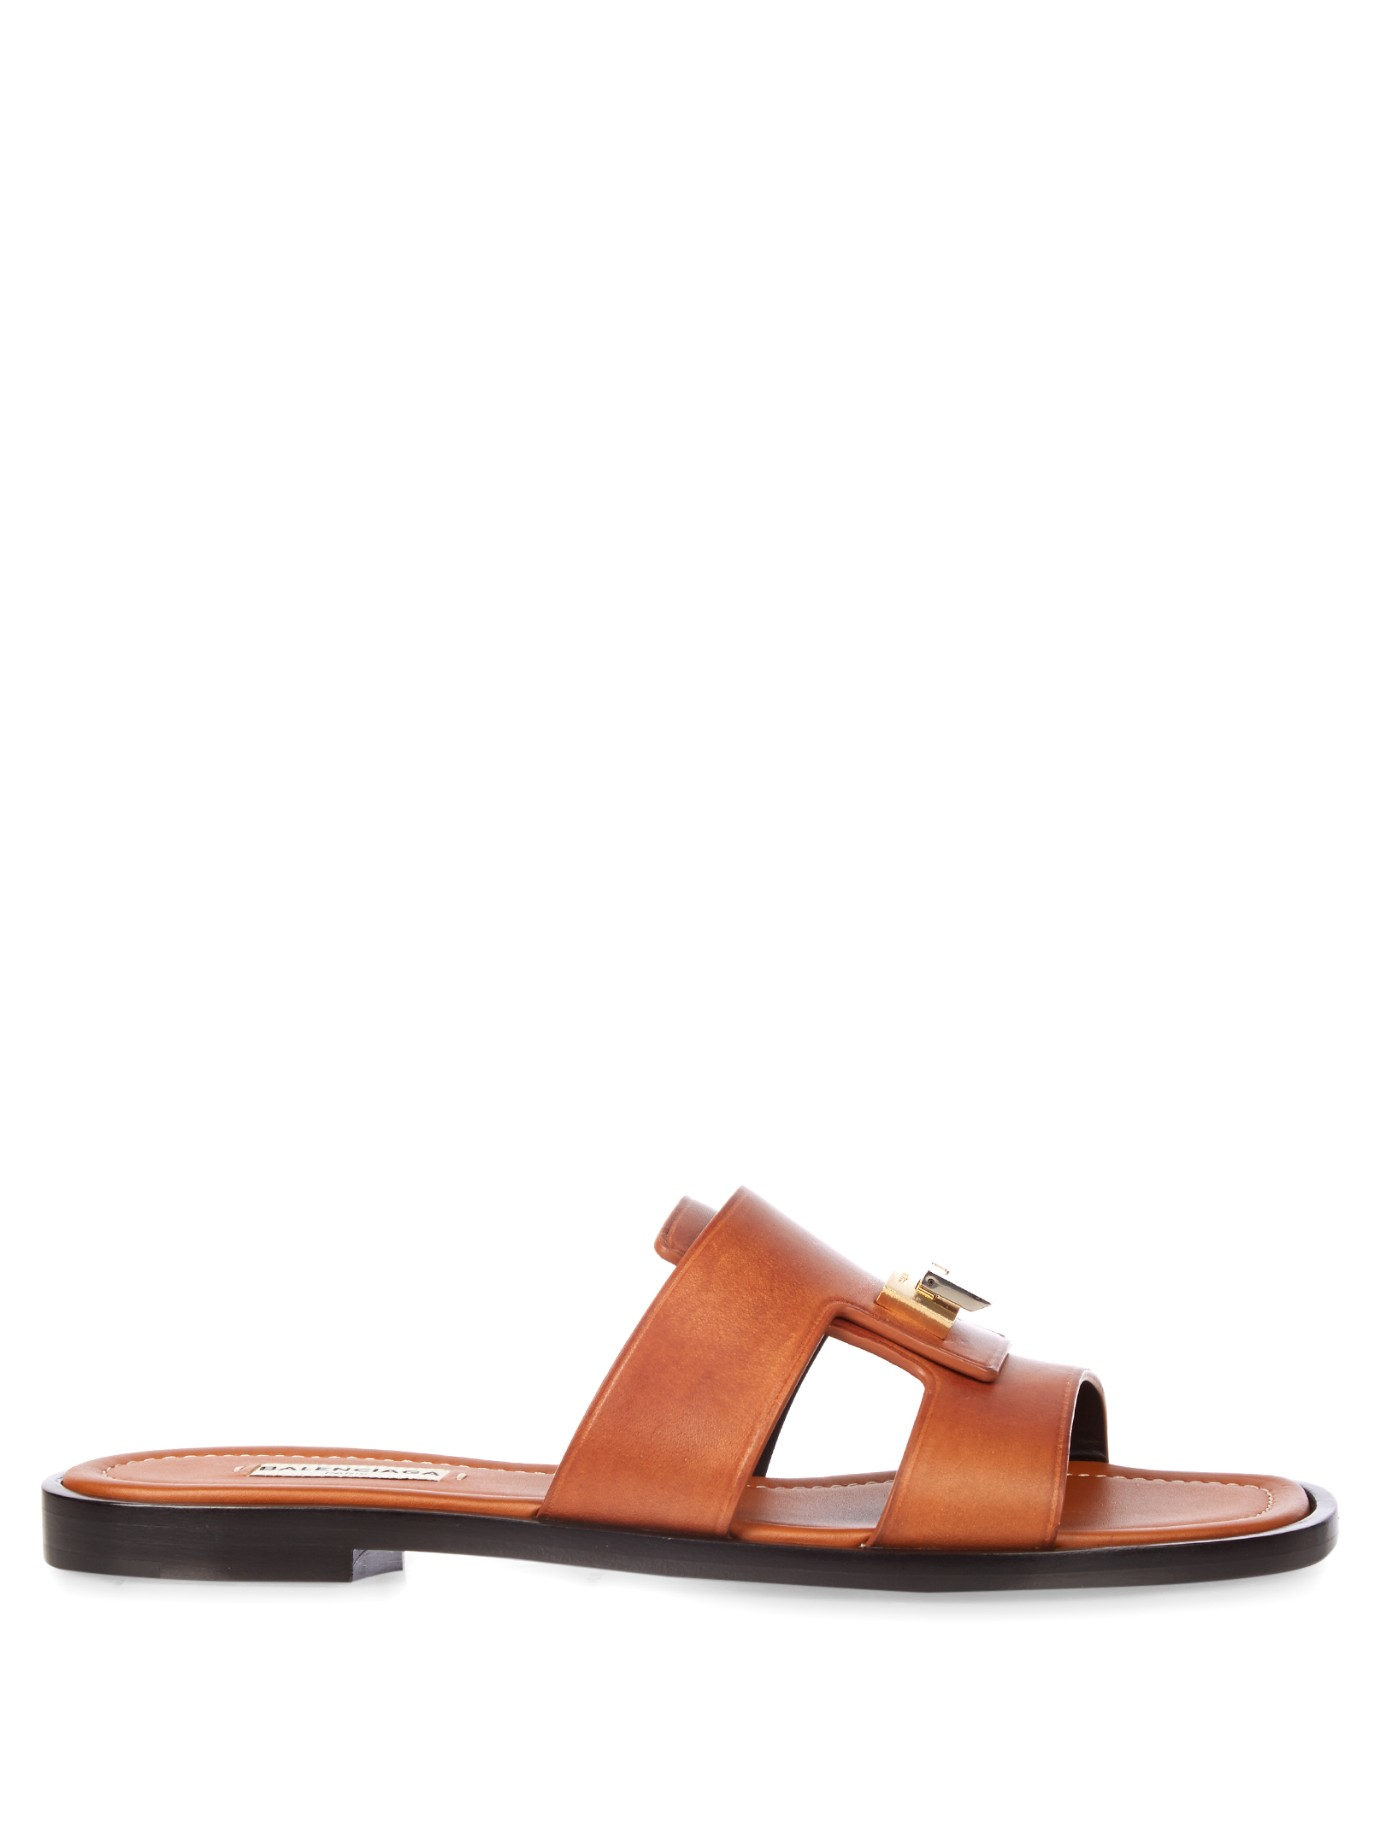 For sale online cheap price pre order Balenciaga Tan Leather Sandals shop for cheap online clearance store sale online vw5jTJewkJ